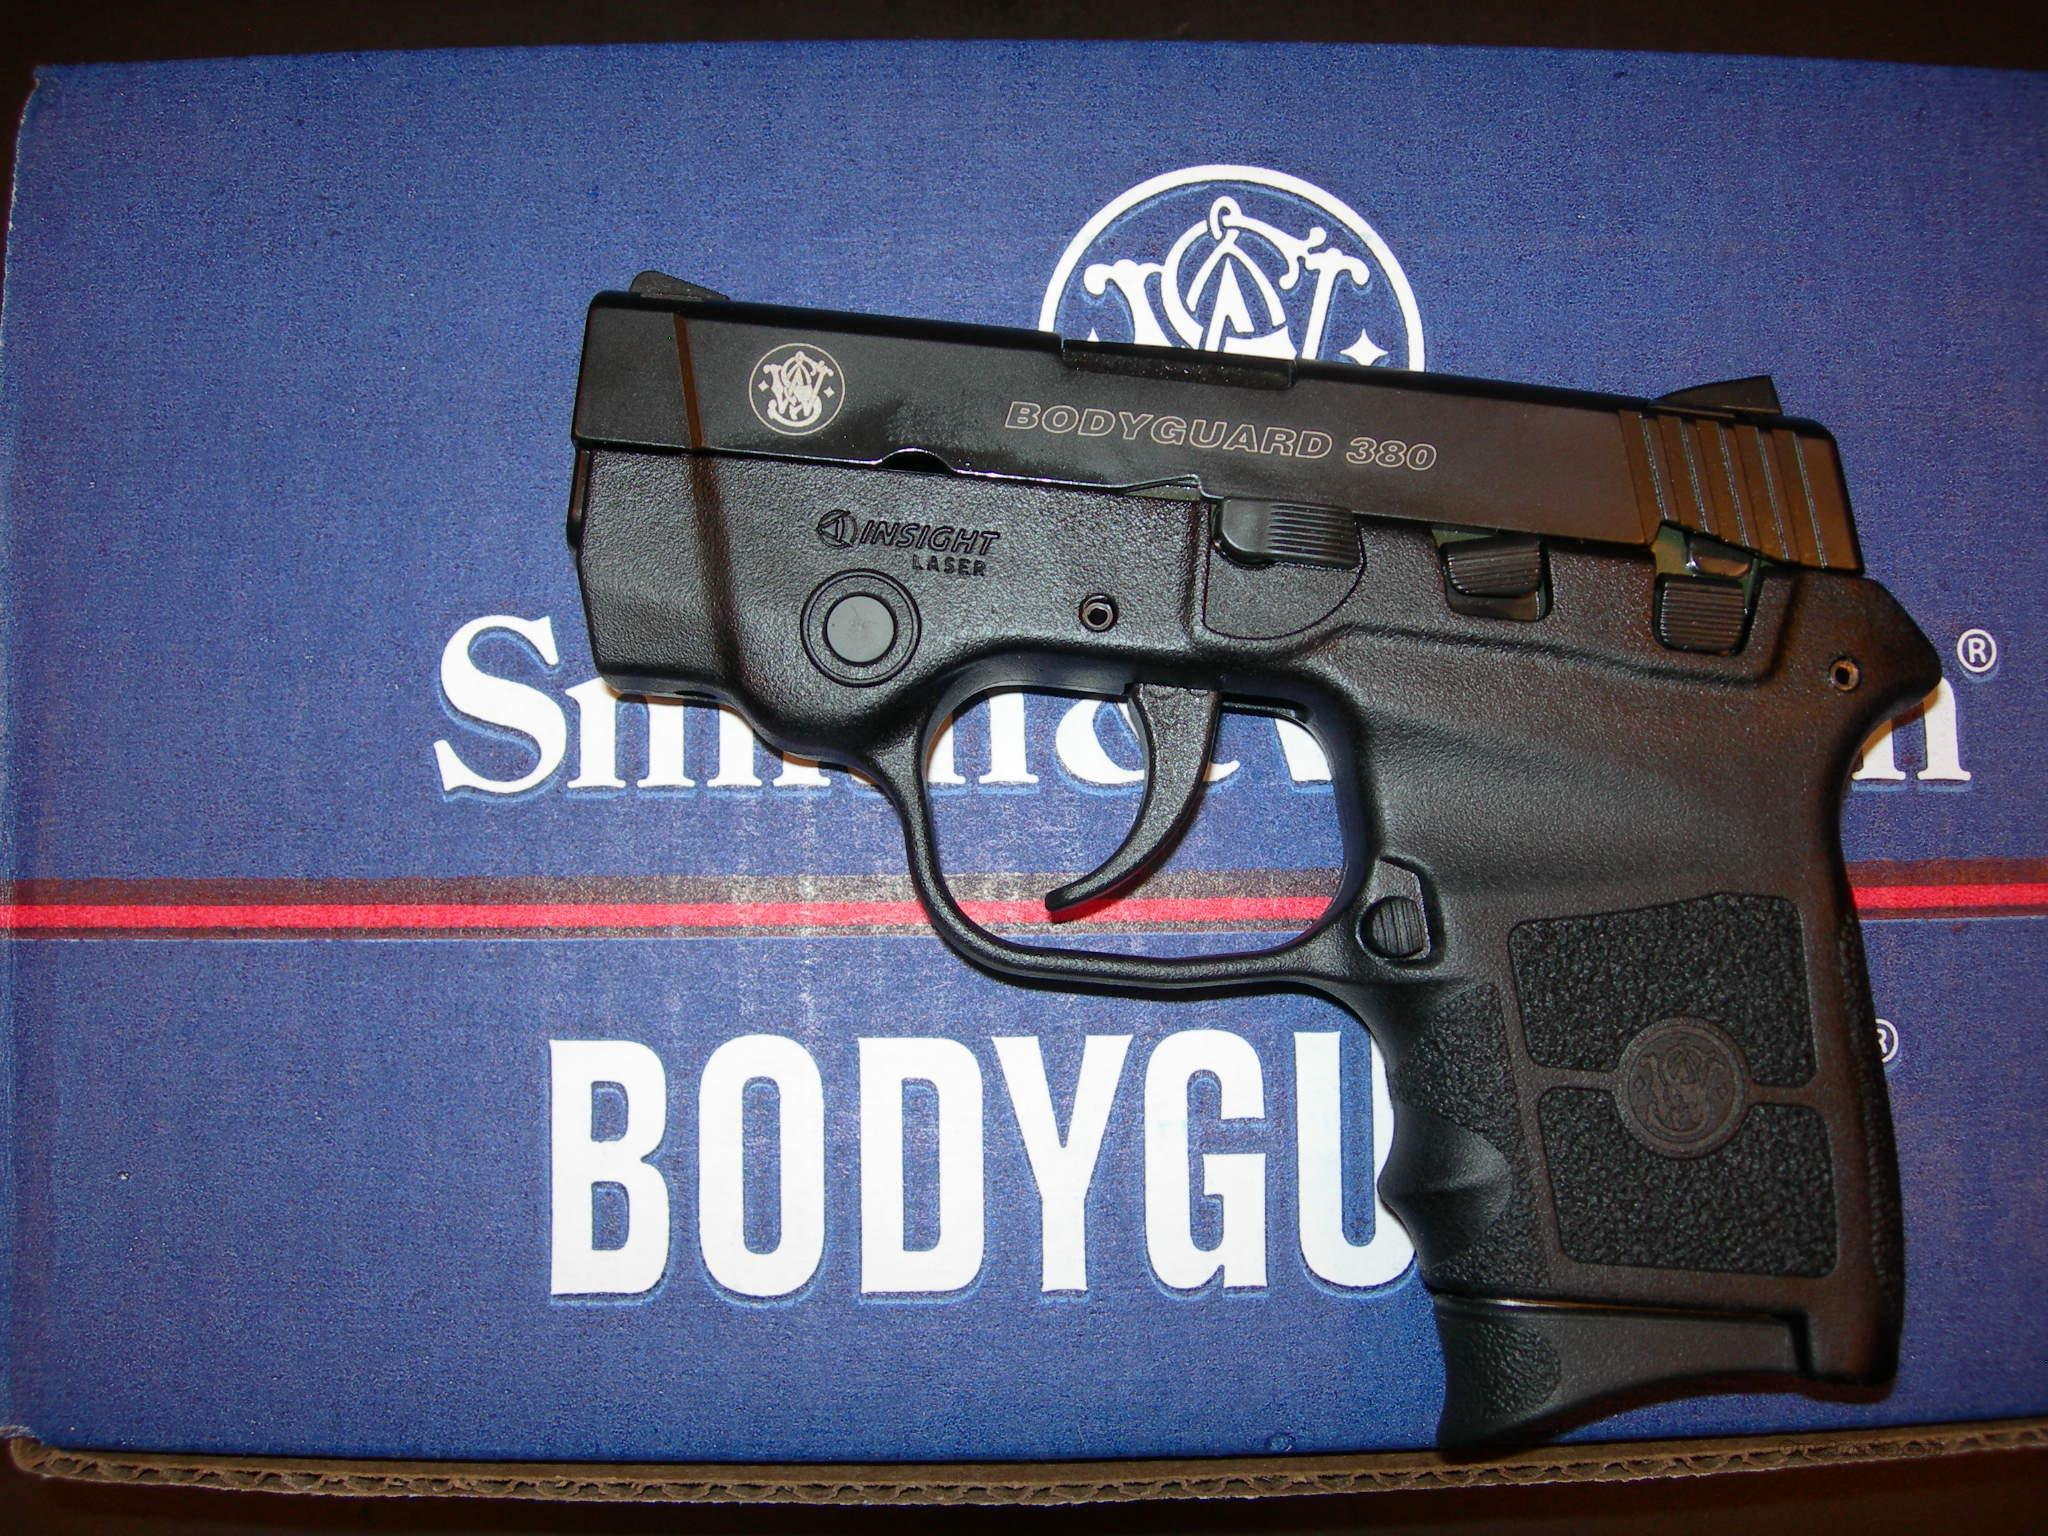 Smith & Wesson BODYGUARD 380 ACP  Guns > Pistols > Smith & Wesson Pistols - Autos > Polymer Frame